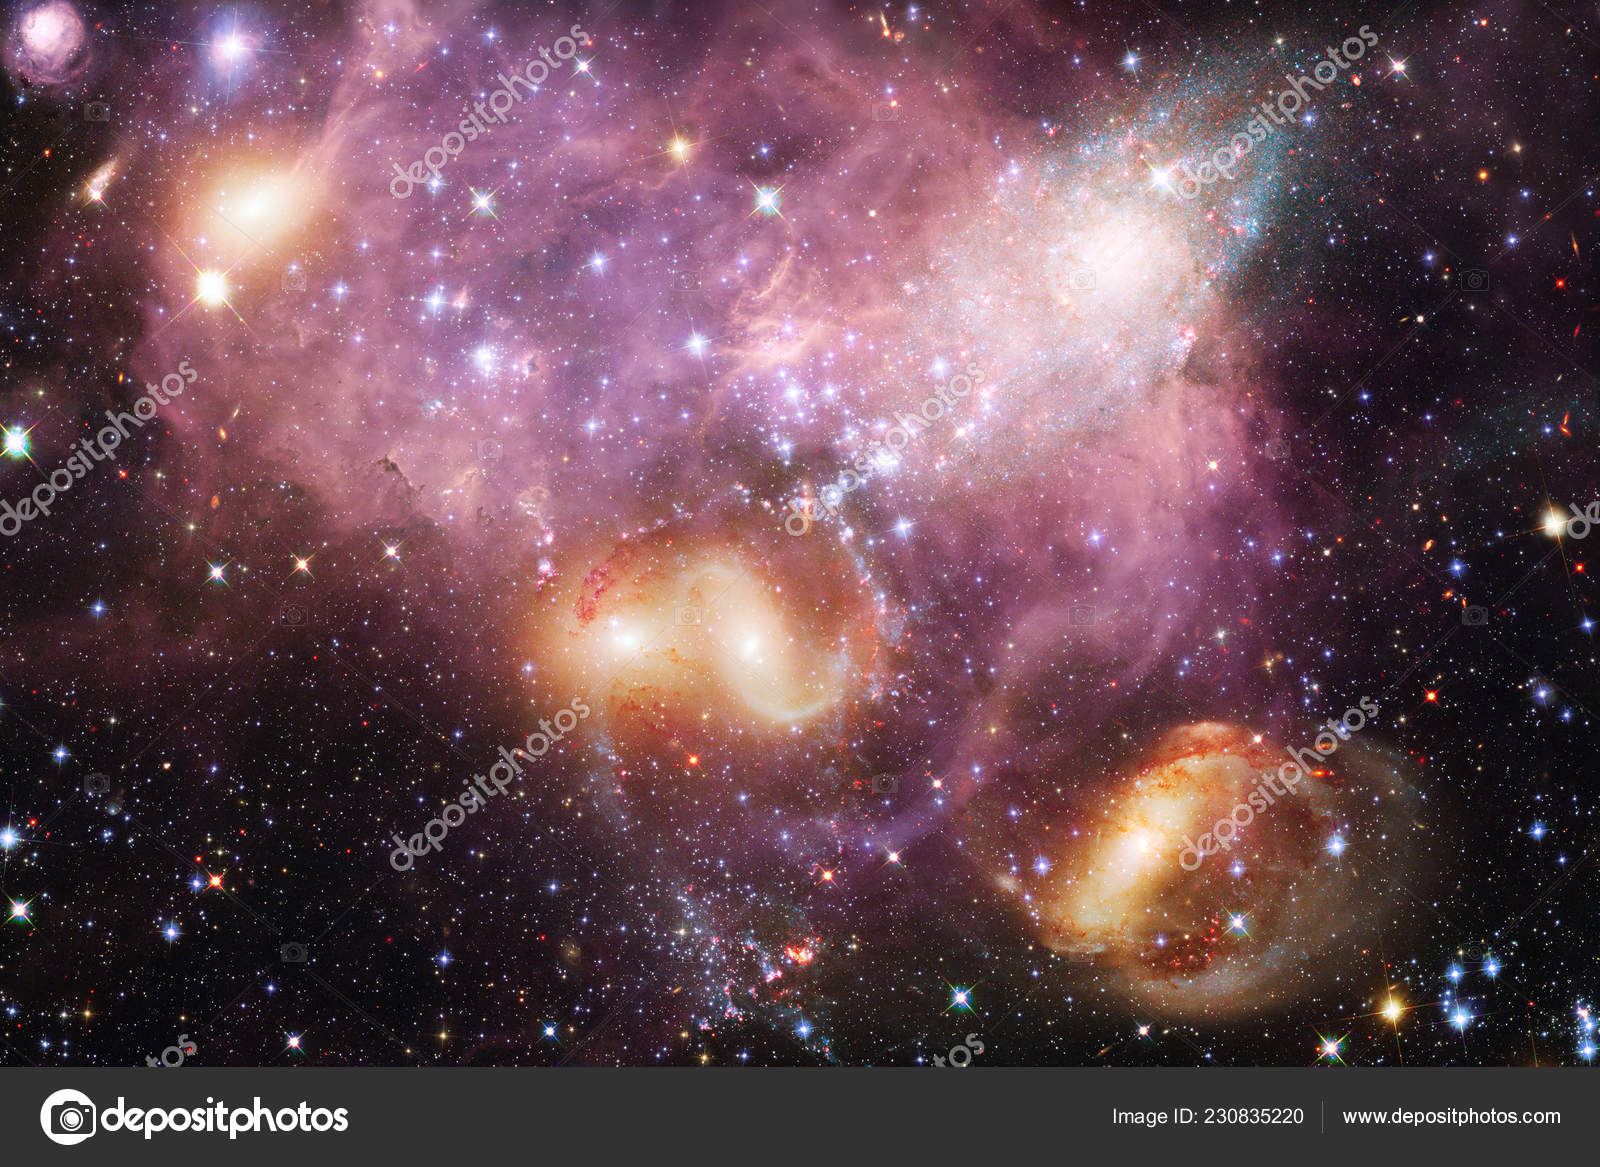 Nebula Outer Space Image Suitable Wallpaper Elements Image Furnished Nasa — Stock Photo